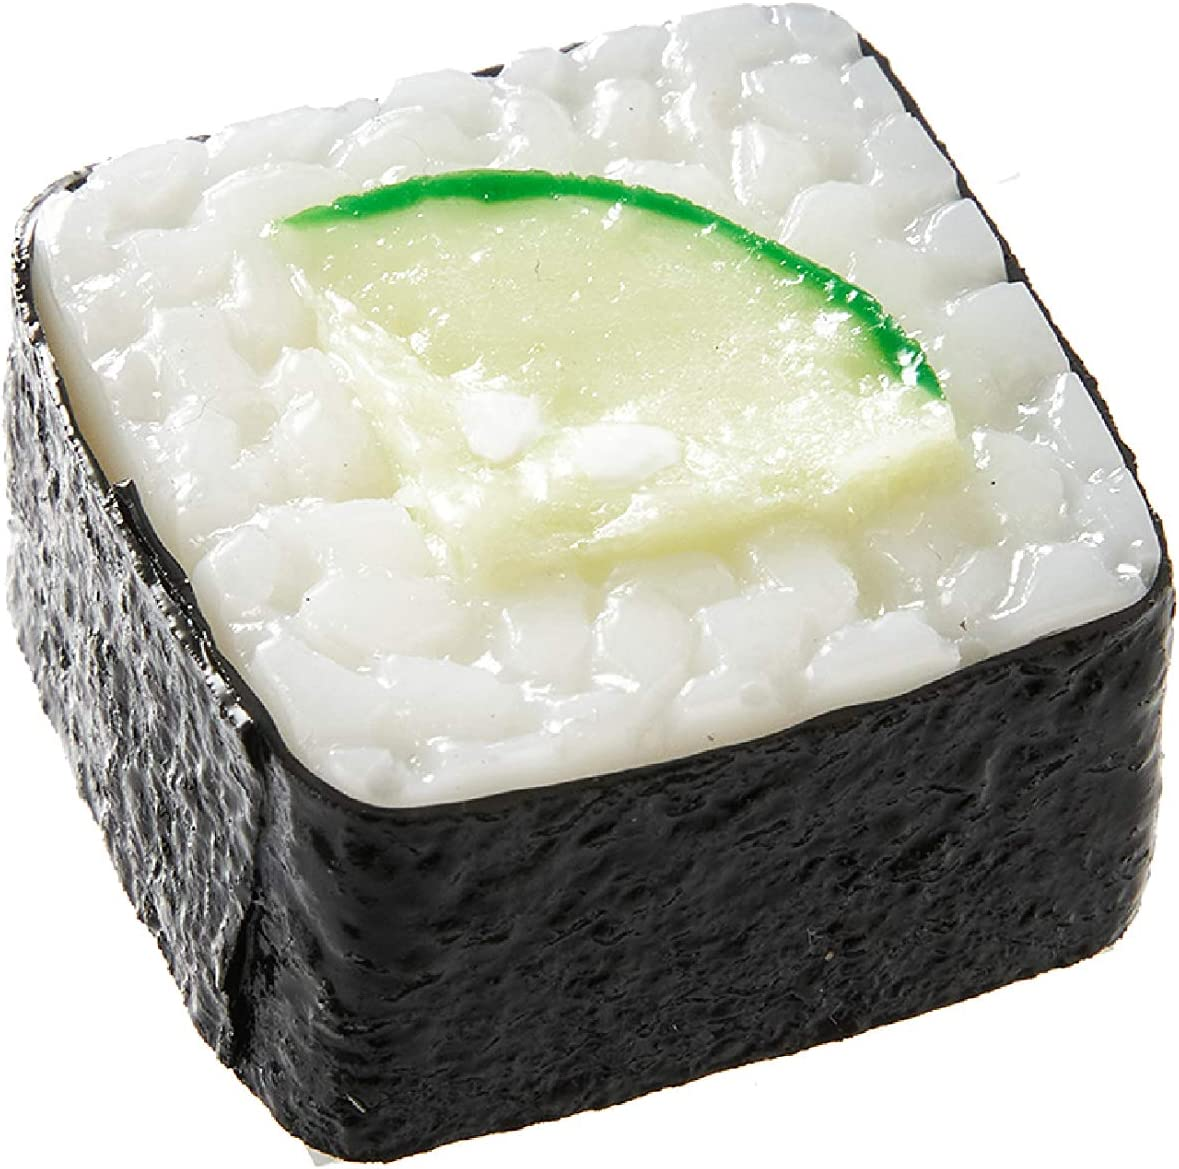 Sushi Magnet (1 pack: Cucumber Roll) Realistic, food replicas made by the experts/ A great gift for people who like sushi and novelty/ For refrigerators, whiteboards/ 20 kinds in total